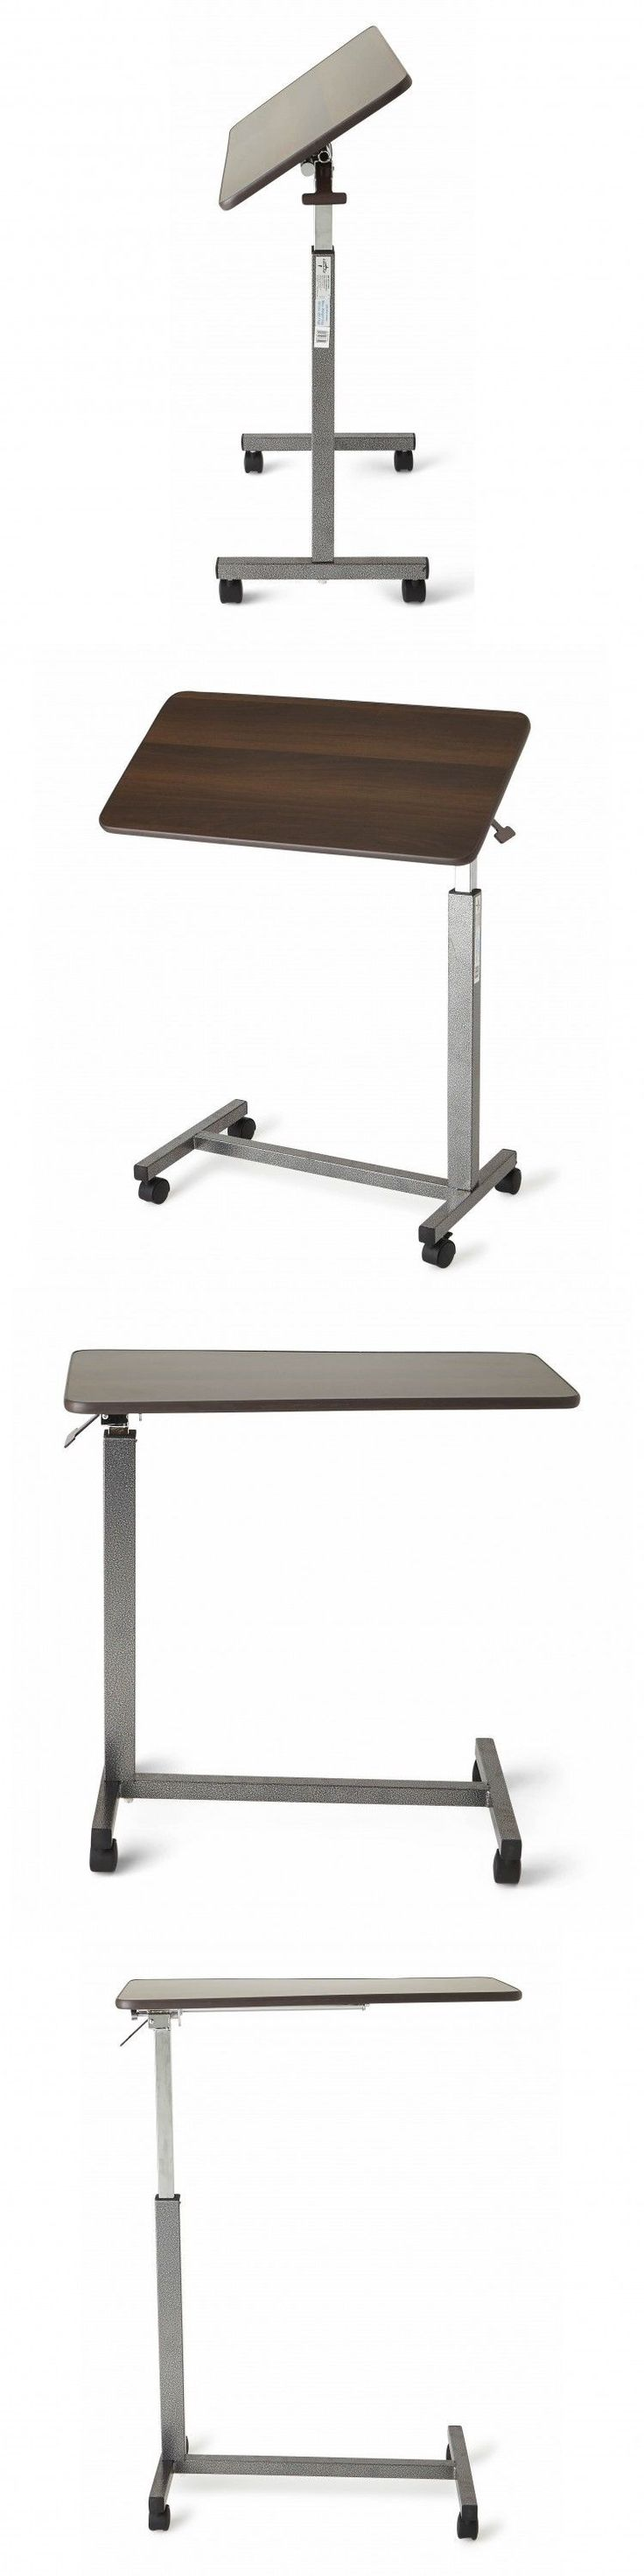 Overbed table food tray non tilt top bed hospital adjustable rolling - Bed And Chair Tables Over The Bed Table Rolling Adjustable Tilt Hospital Cart Tray Bedridden